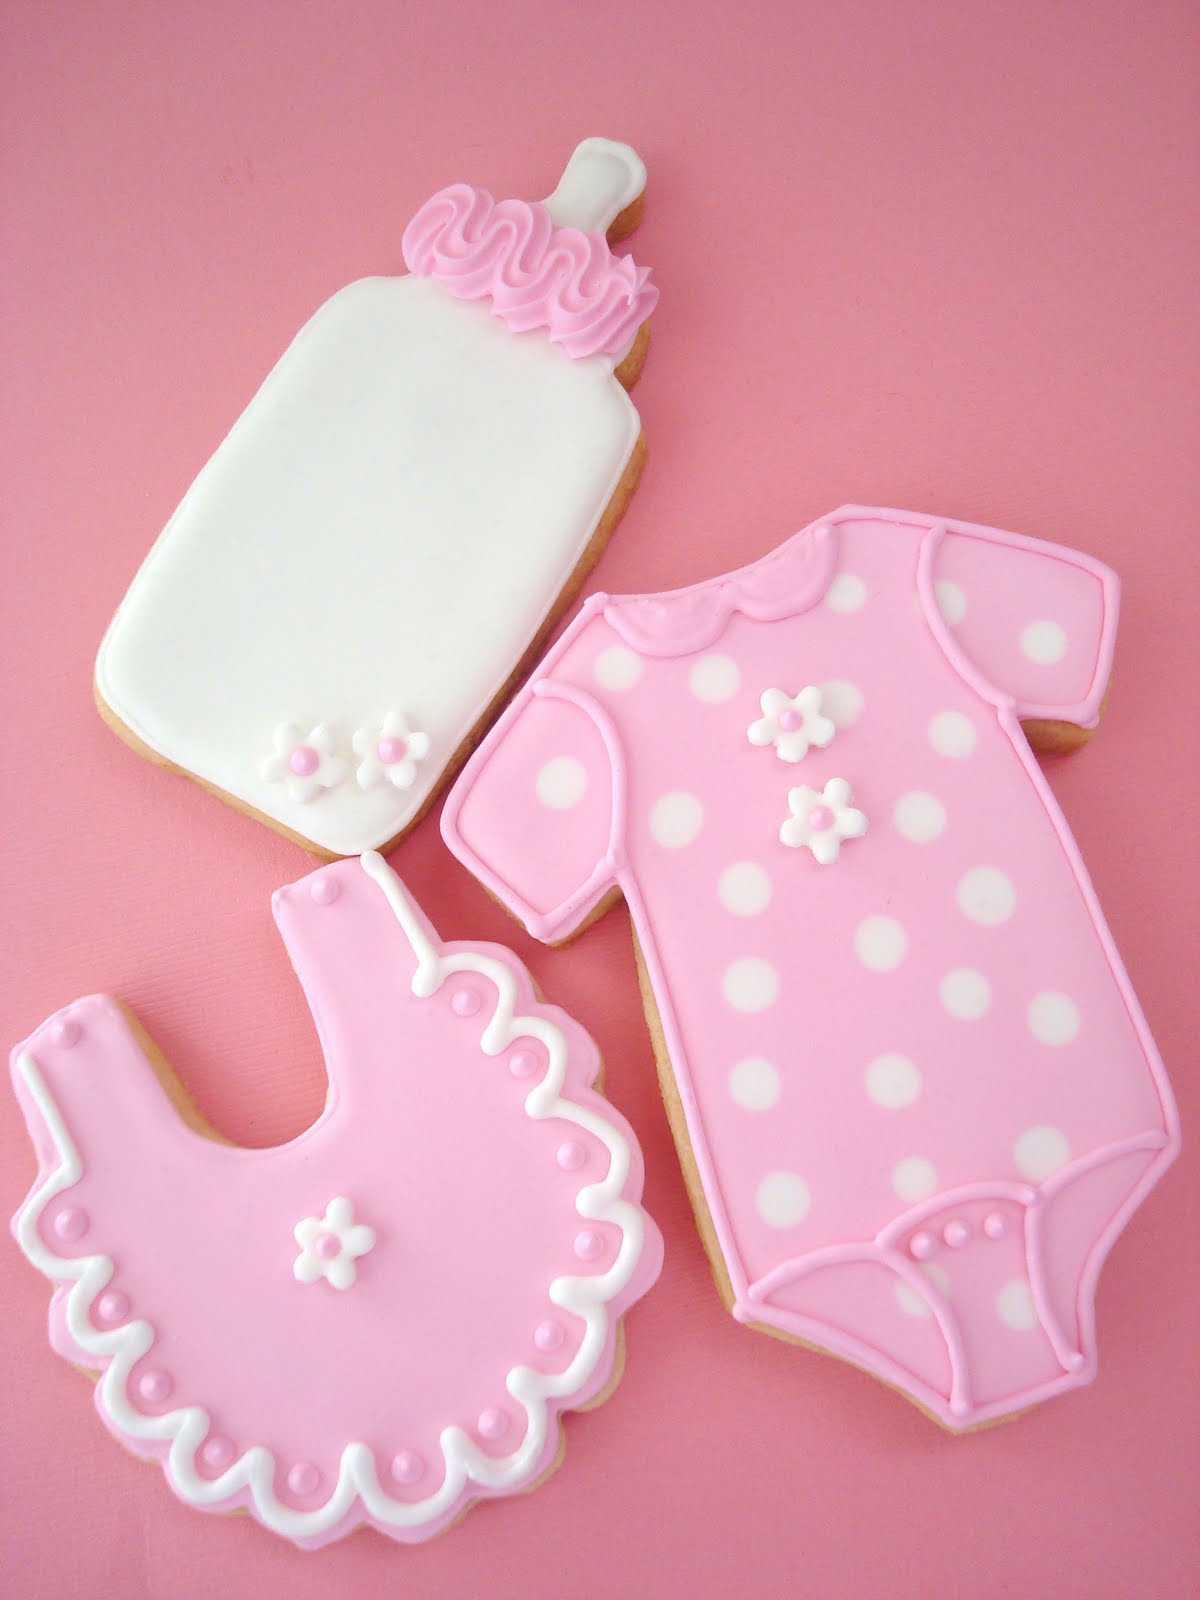 My Pink Little Cake It s a Girl Baby Shower Cookies